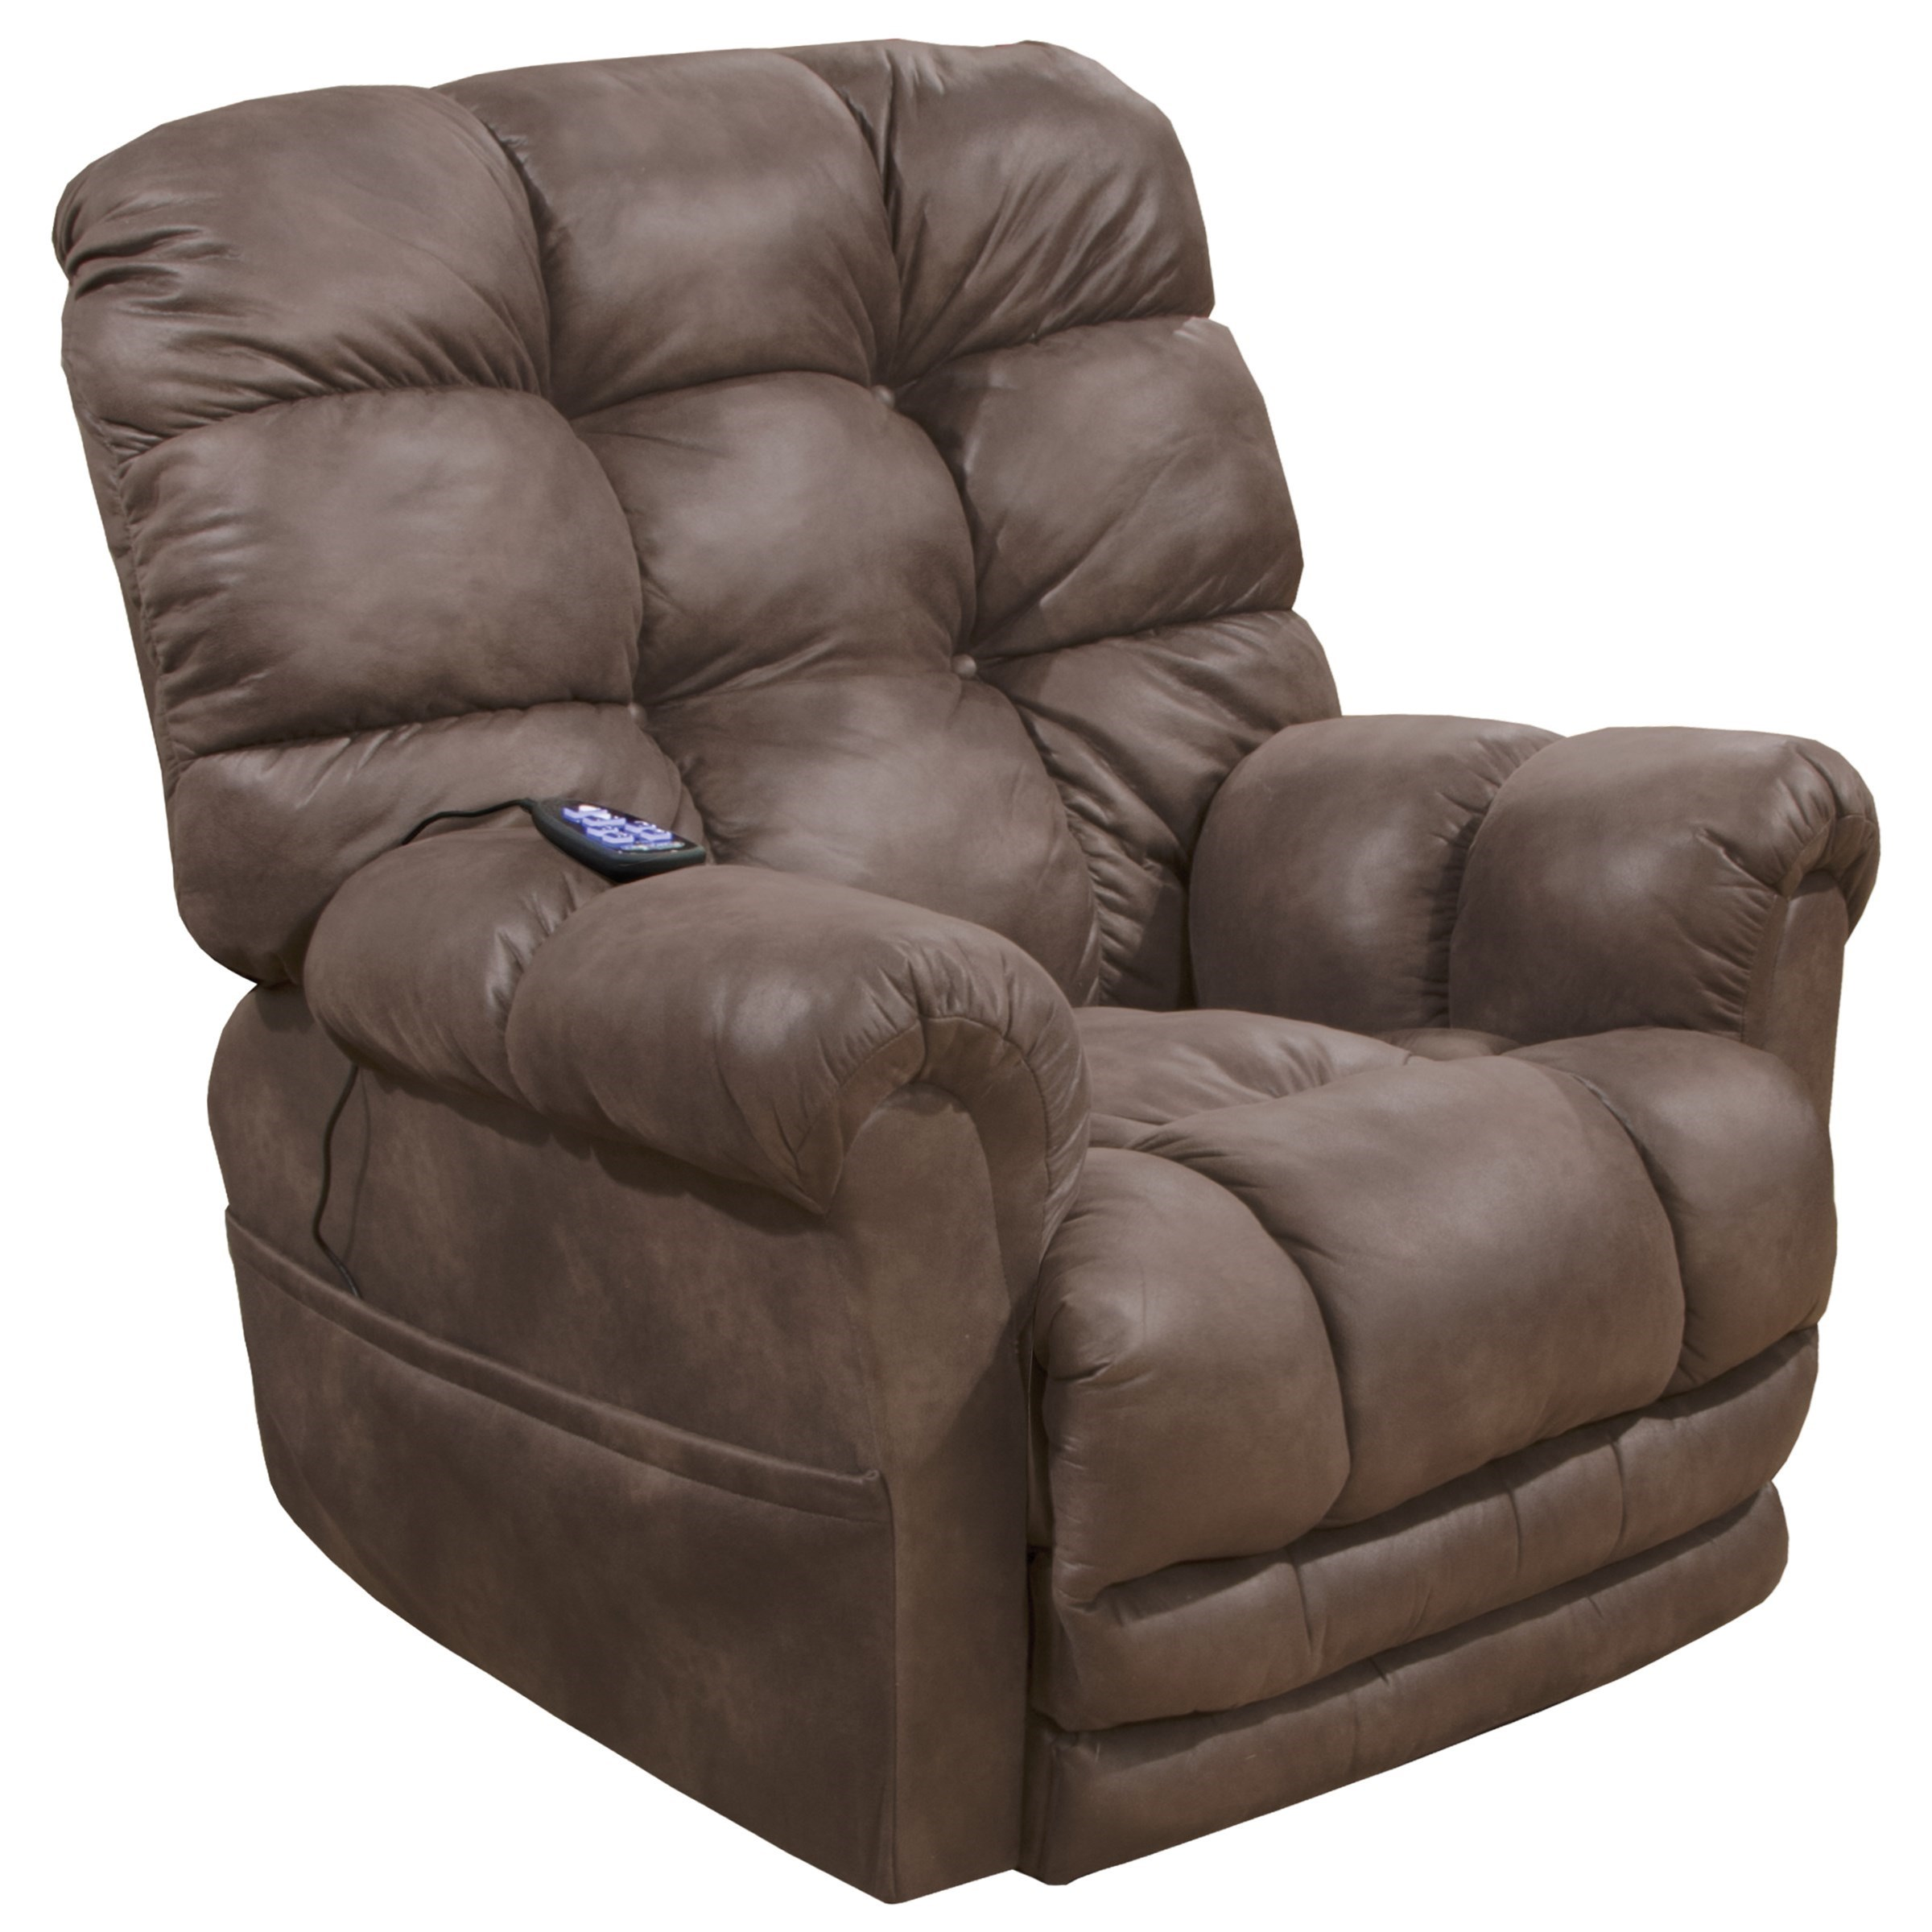 Oliver Power Lift Recliner by Catnapper at Northeast Factory Direct